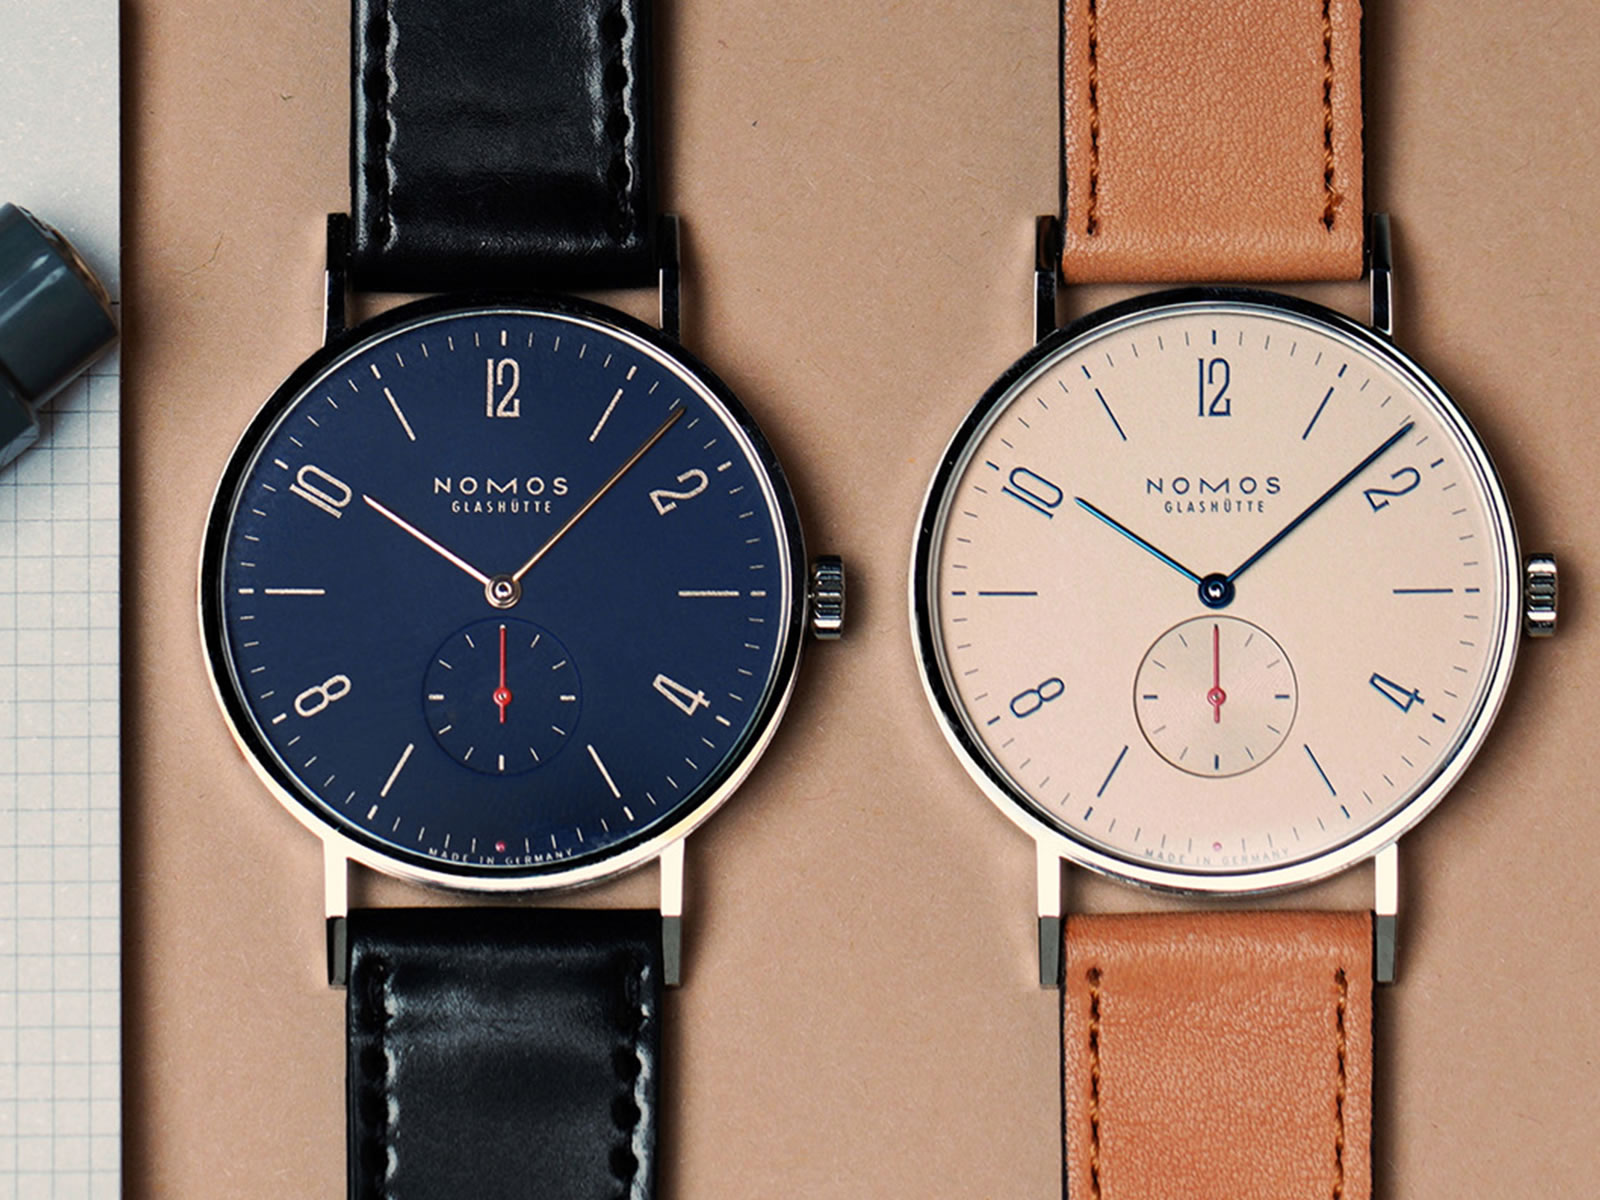 nomos-glashutte-tangente-red-dot-2018-1-.jpg